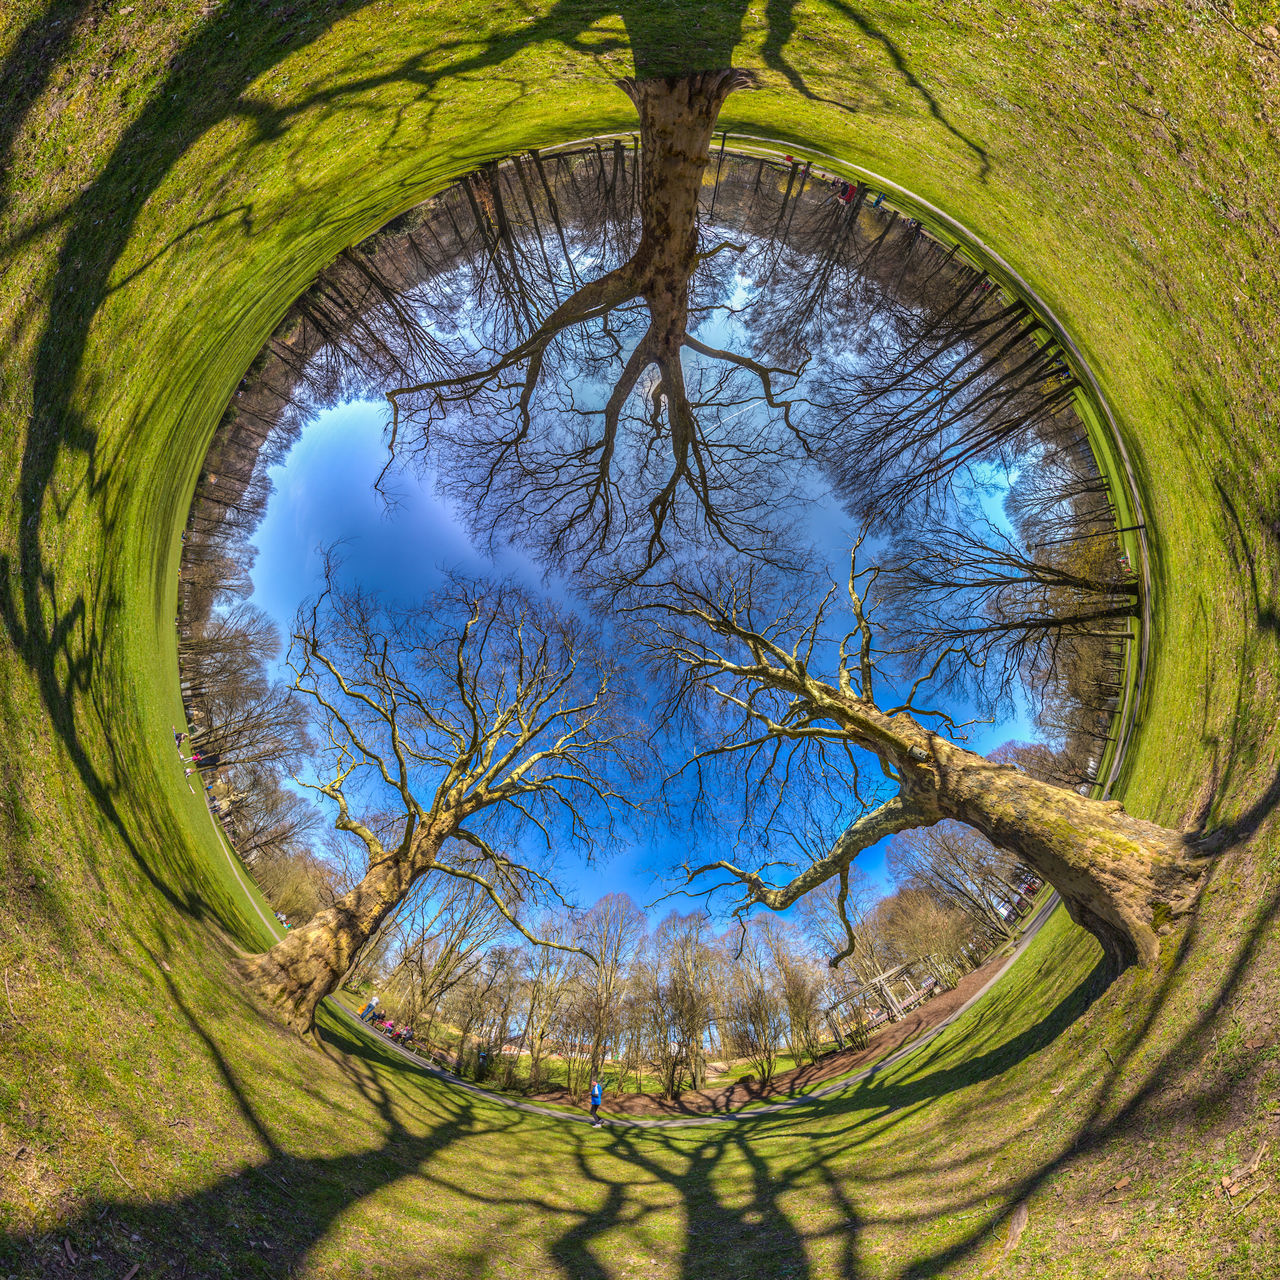 TREEOLOGY turned inside outside 360° Bare Tree Beauty In Nature Blue Sky Branch Branches Day Grass Growth Growth Kaiserslautern Landscape Light And Shadow Little Planet Nature Outdoors Panorama Park Shadows Sky Spherical Panorama Stems Switched Tiny Planet Volkspark